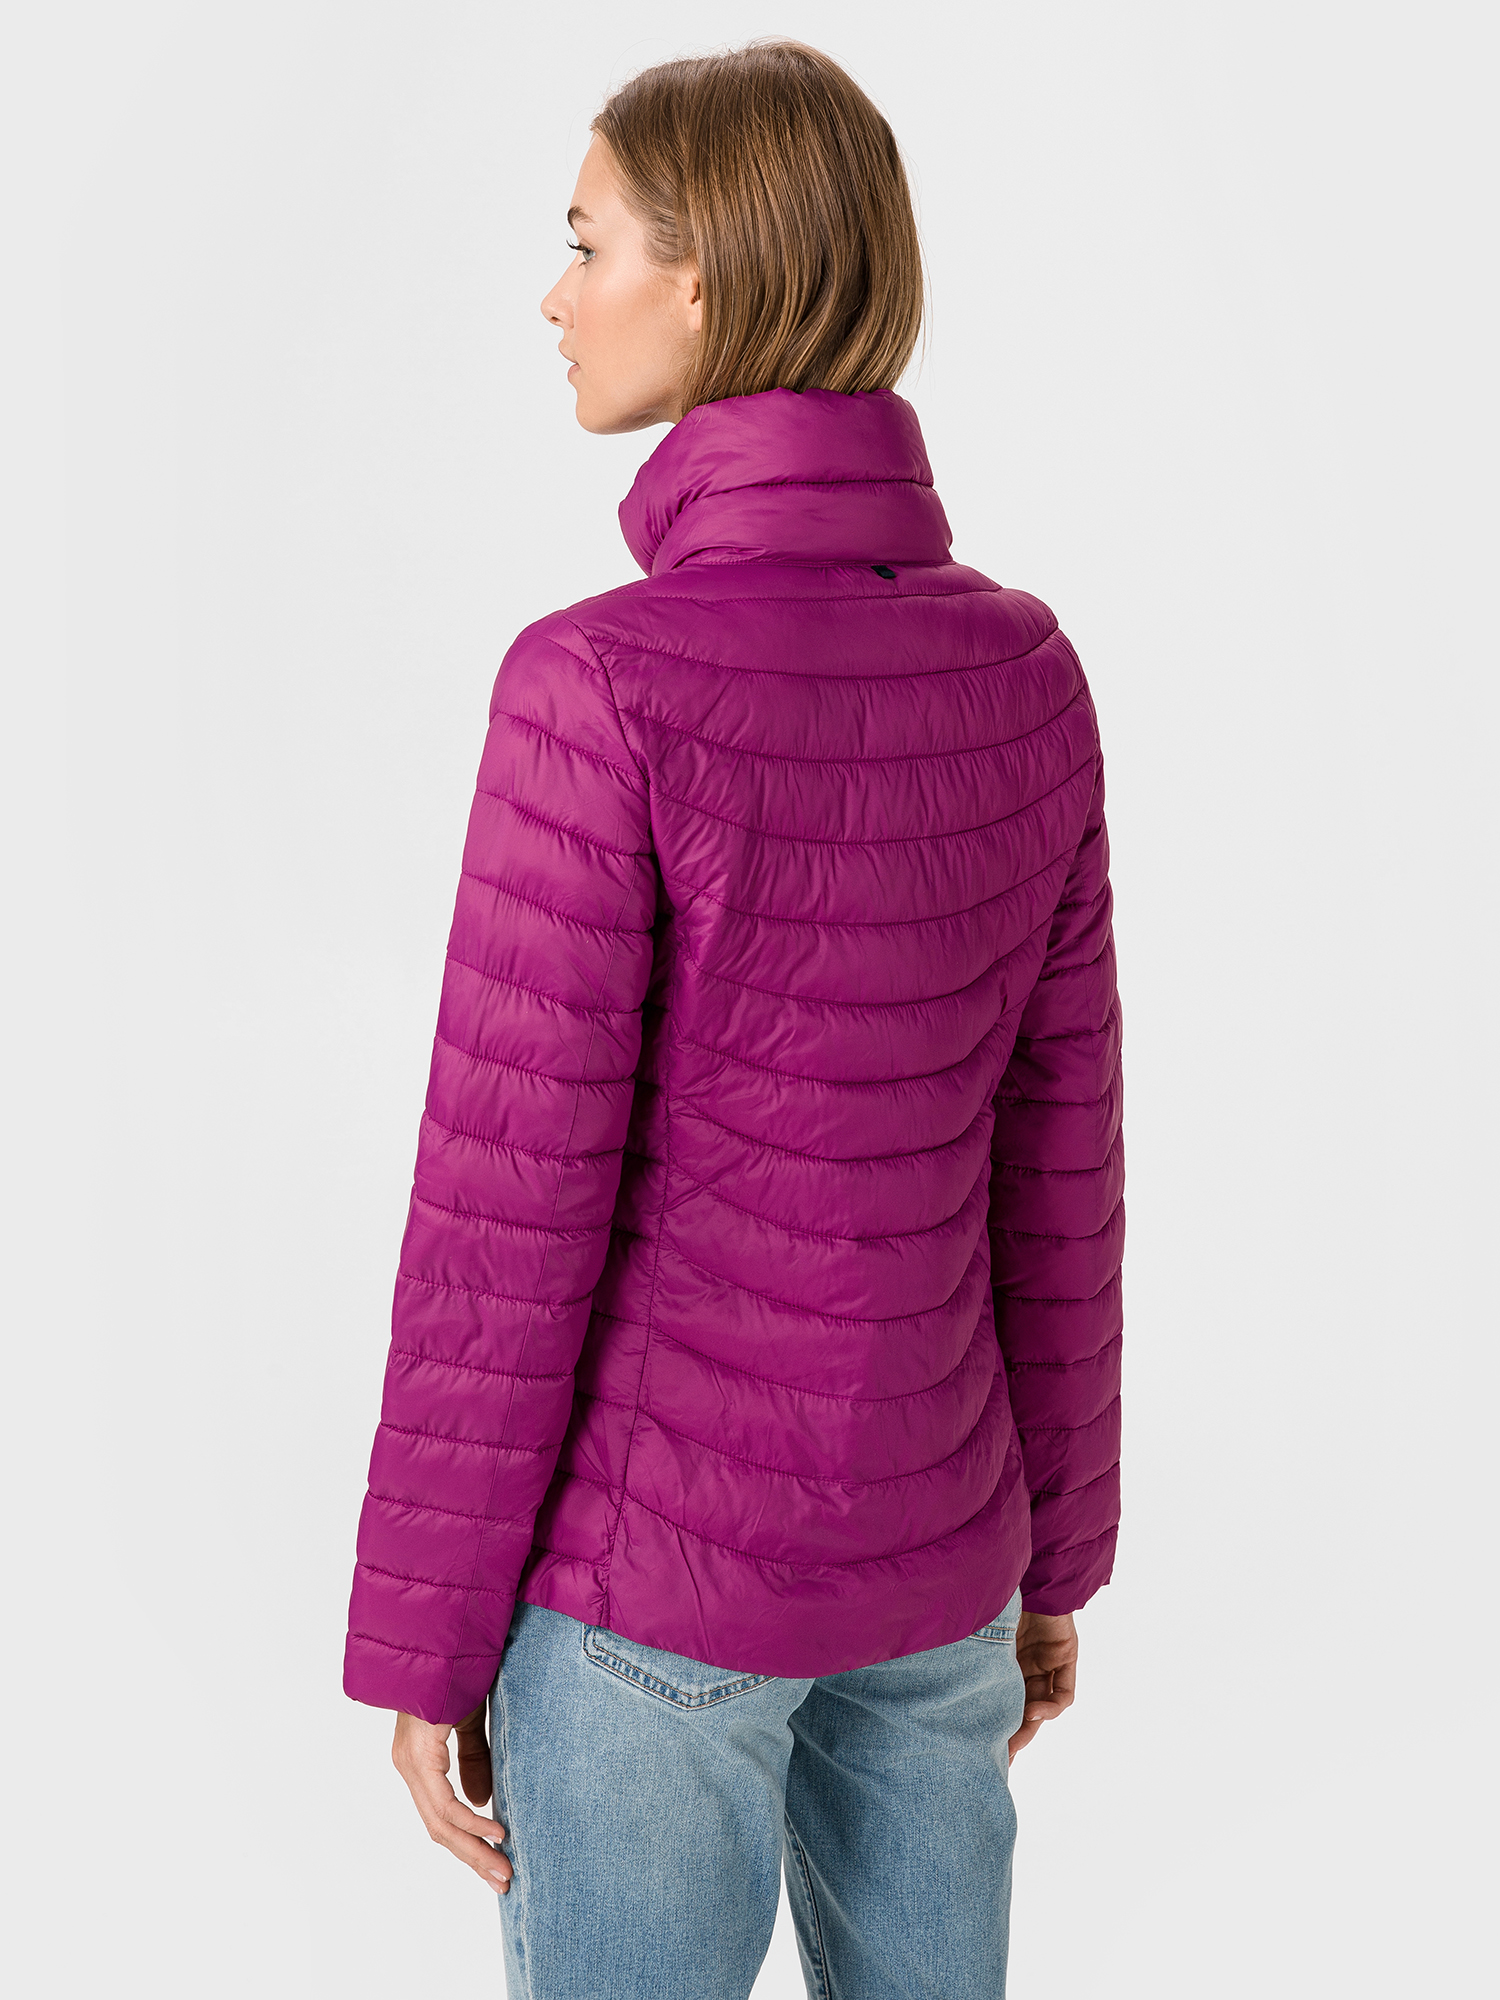 Bunda upcycled lightweight puffer jacket (2)